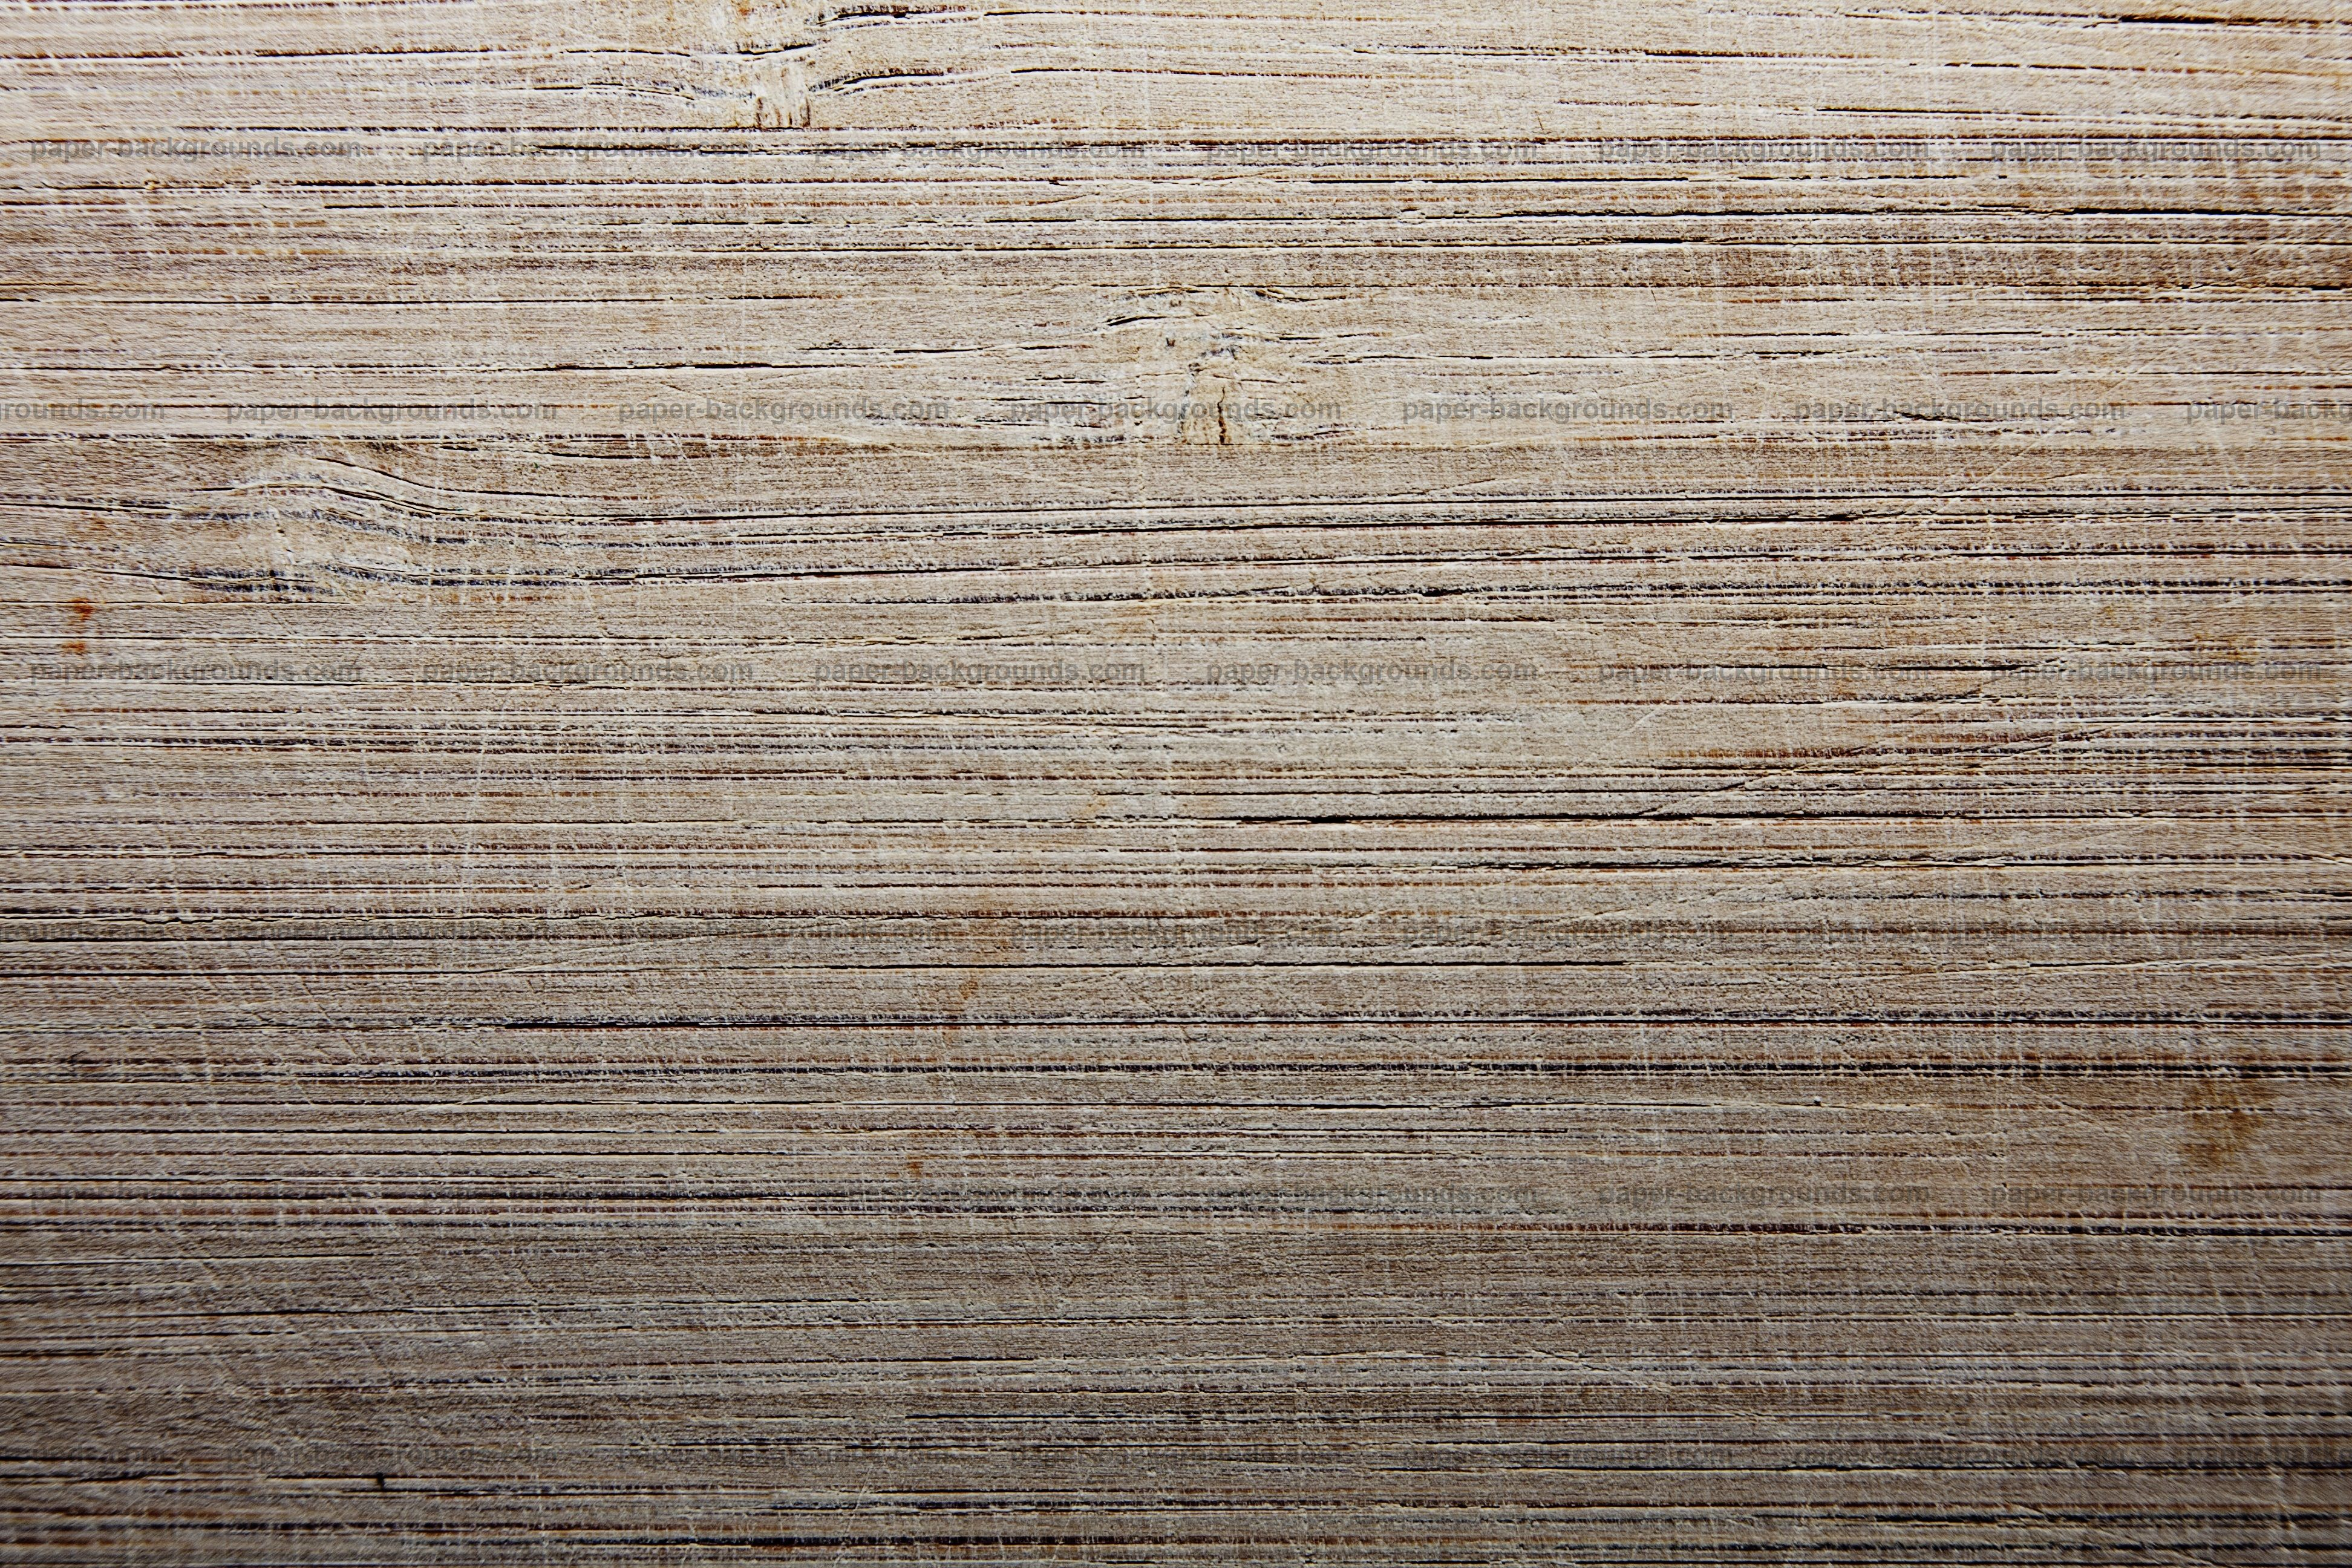 Old Wood Texture Background Hd Paper Backgrounds Wood